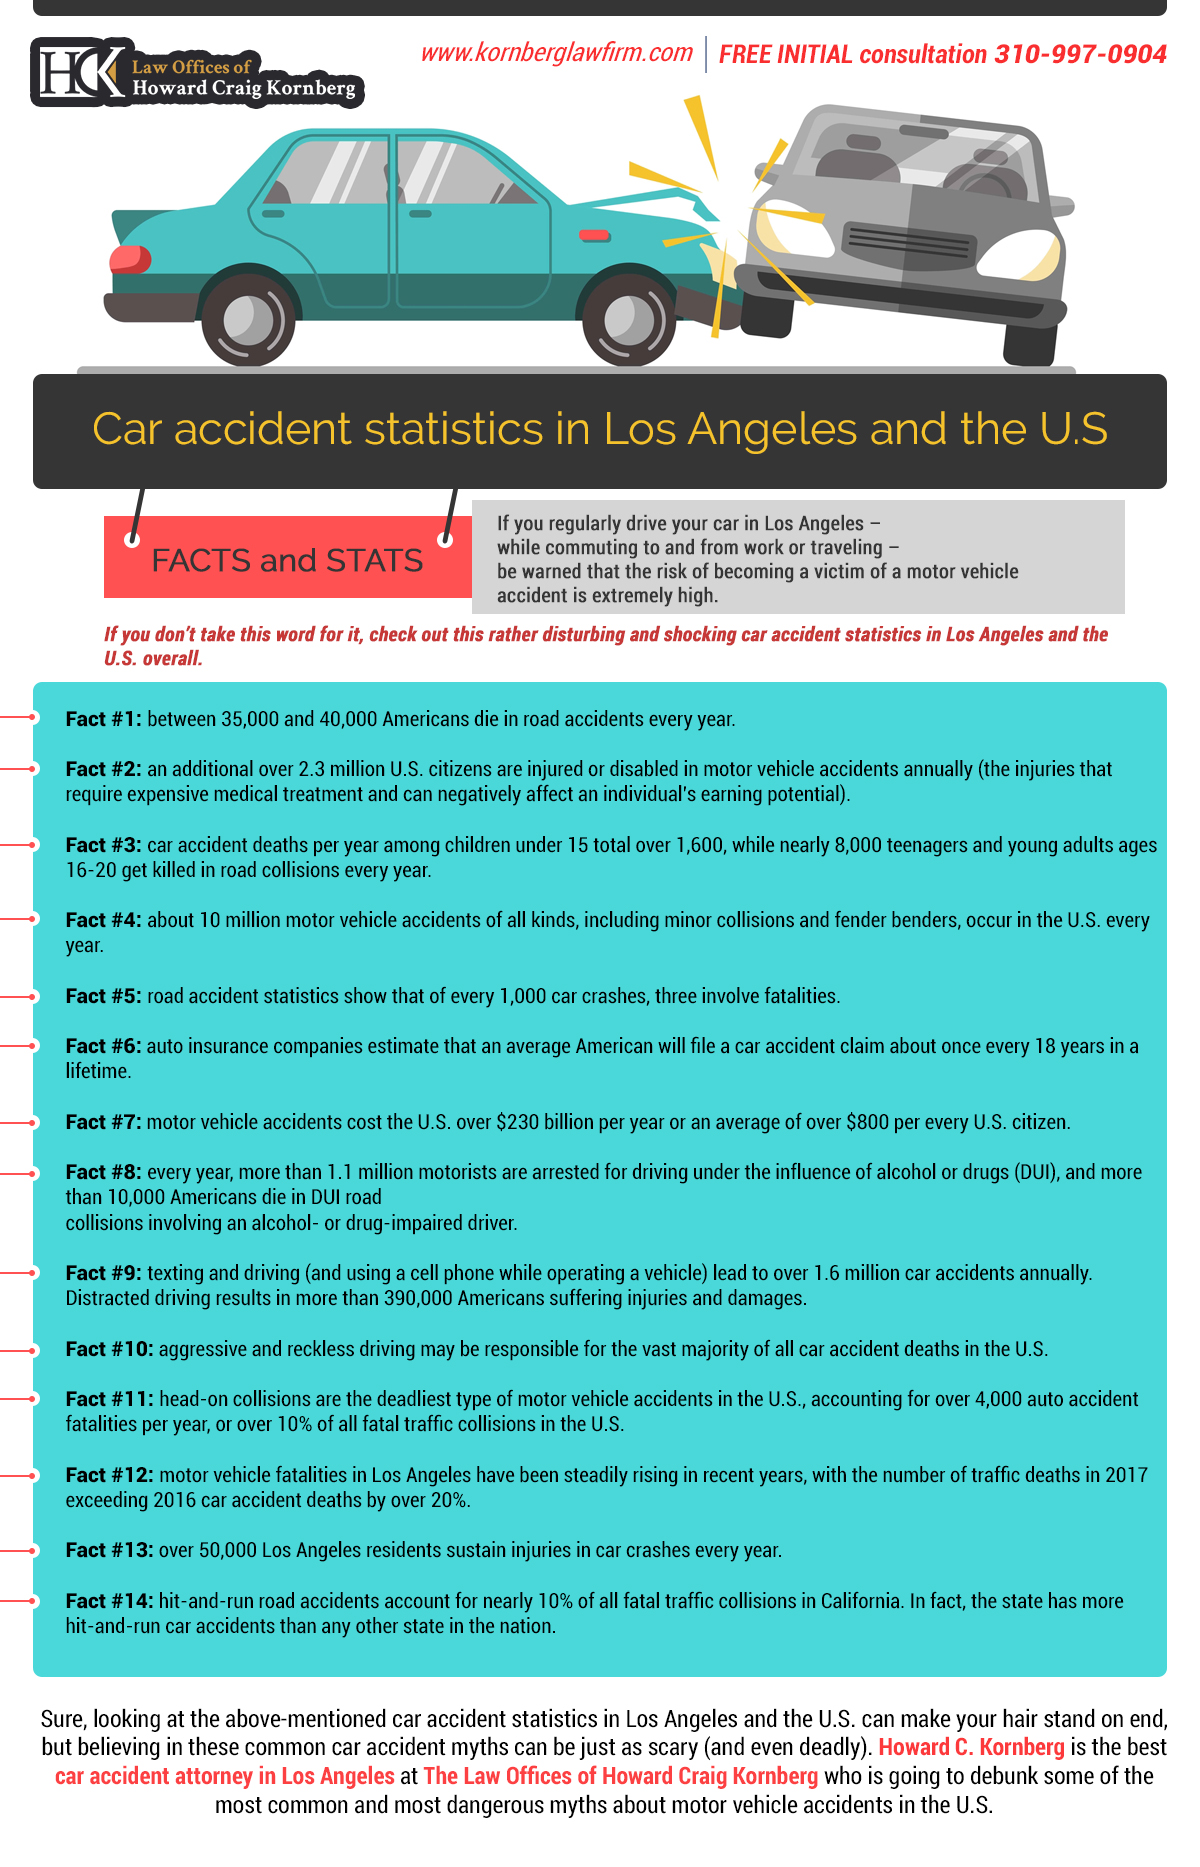 Car accident statistics in Los Angeles and the USA